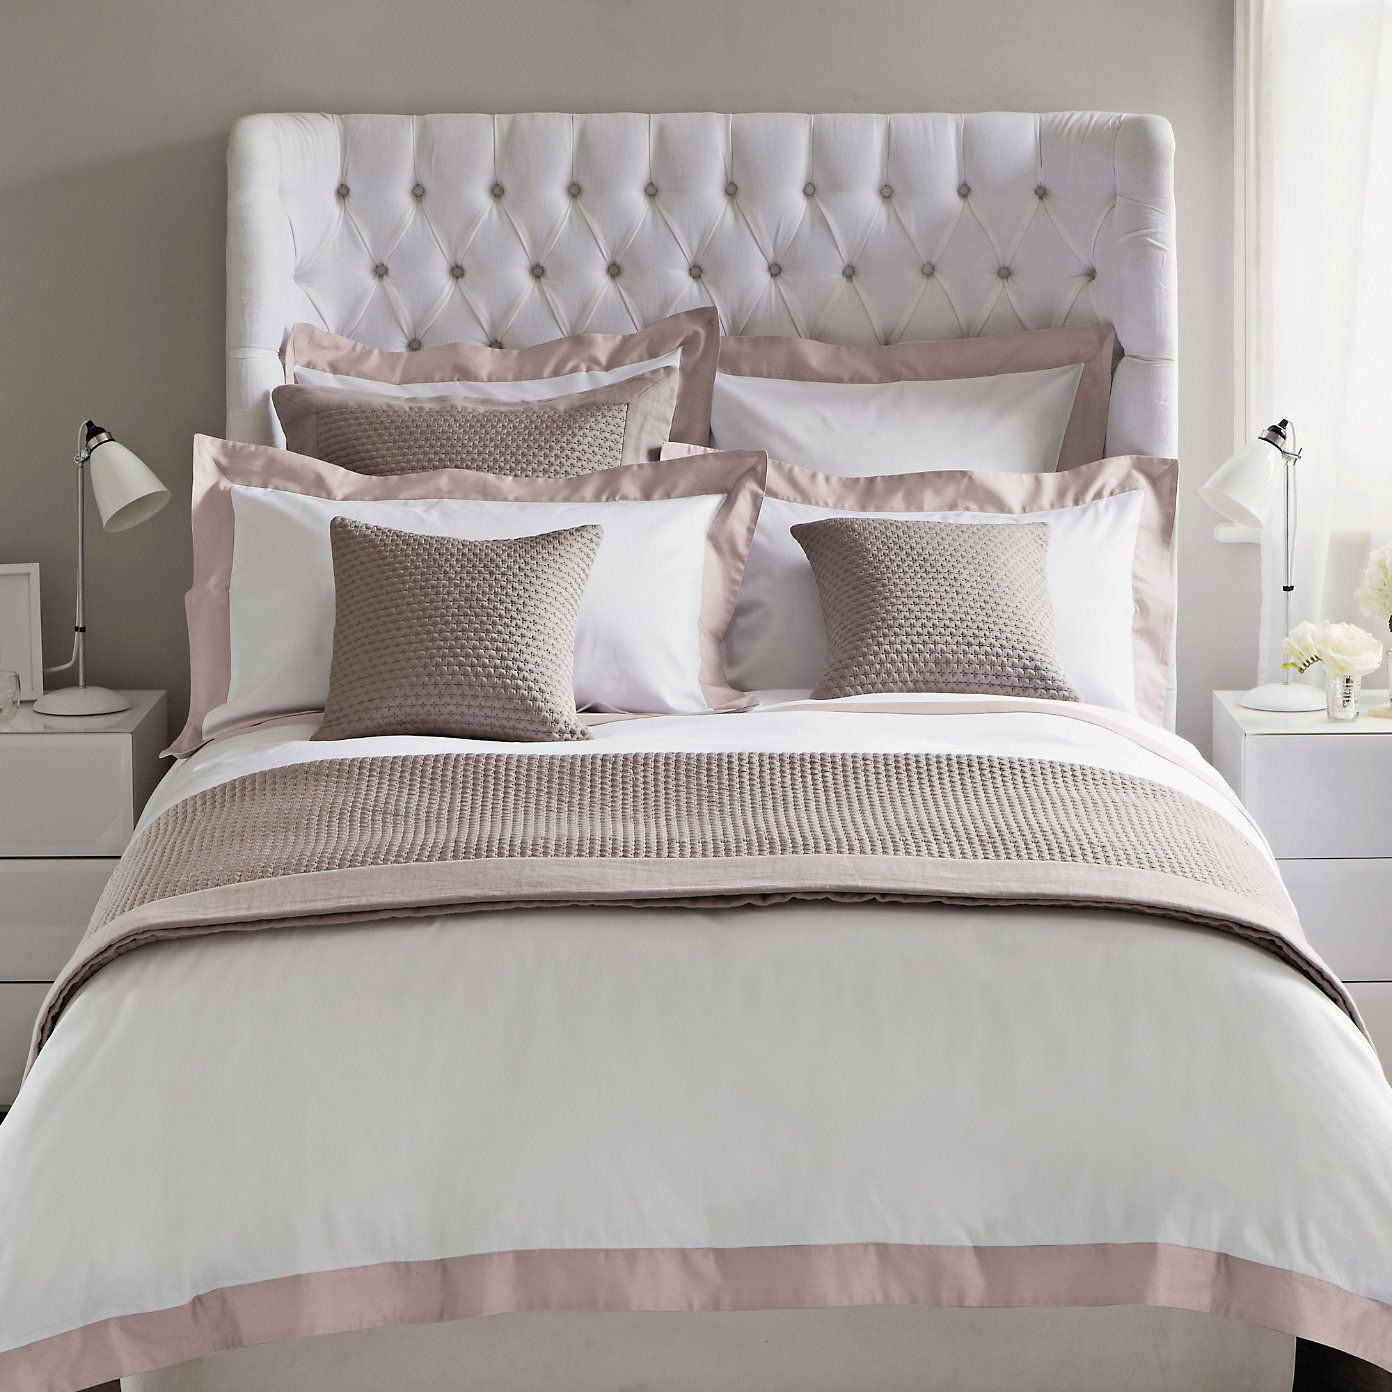 buy bedroom bed linen genoa bed linen collection dusky pink buy bedroom bed linen genoa bed linen collection dusky pink from the white